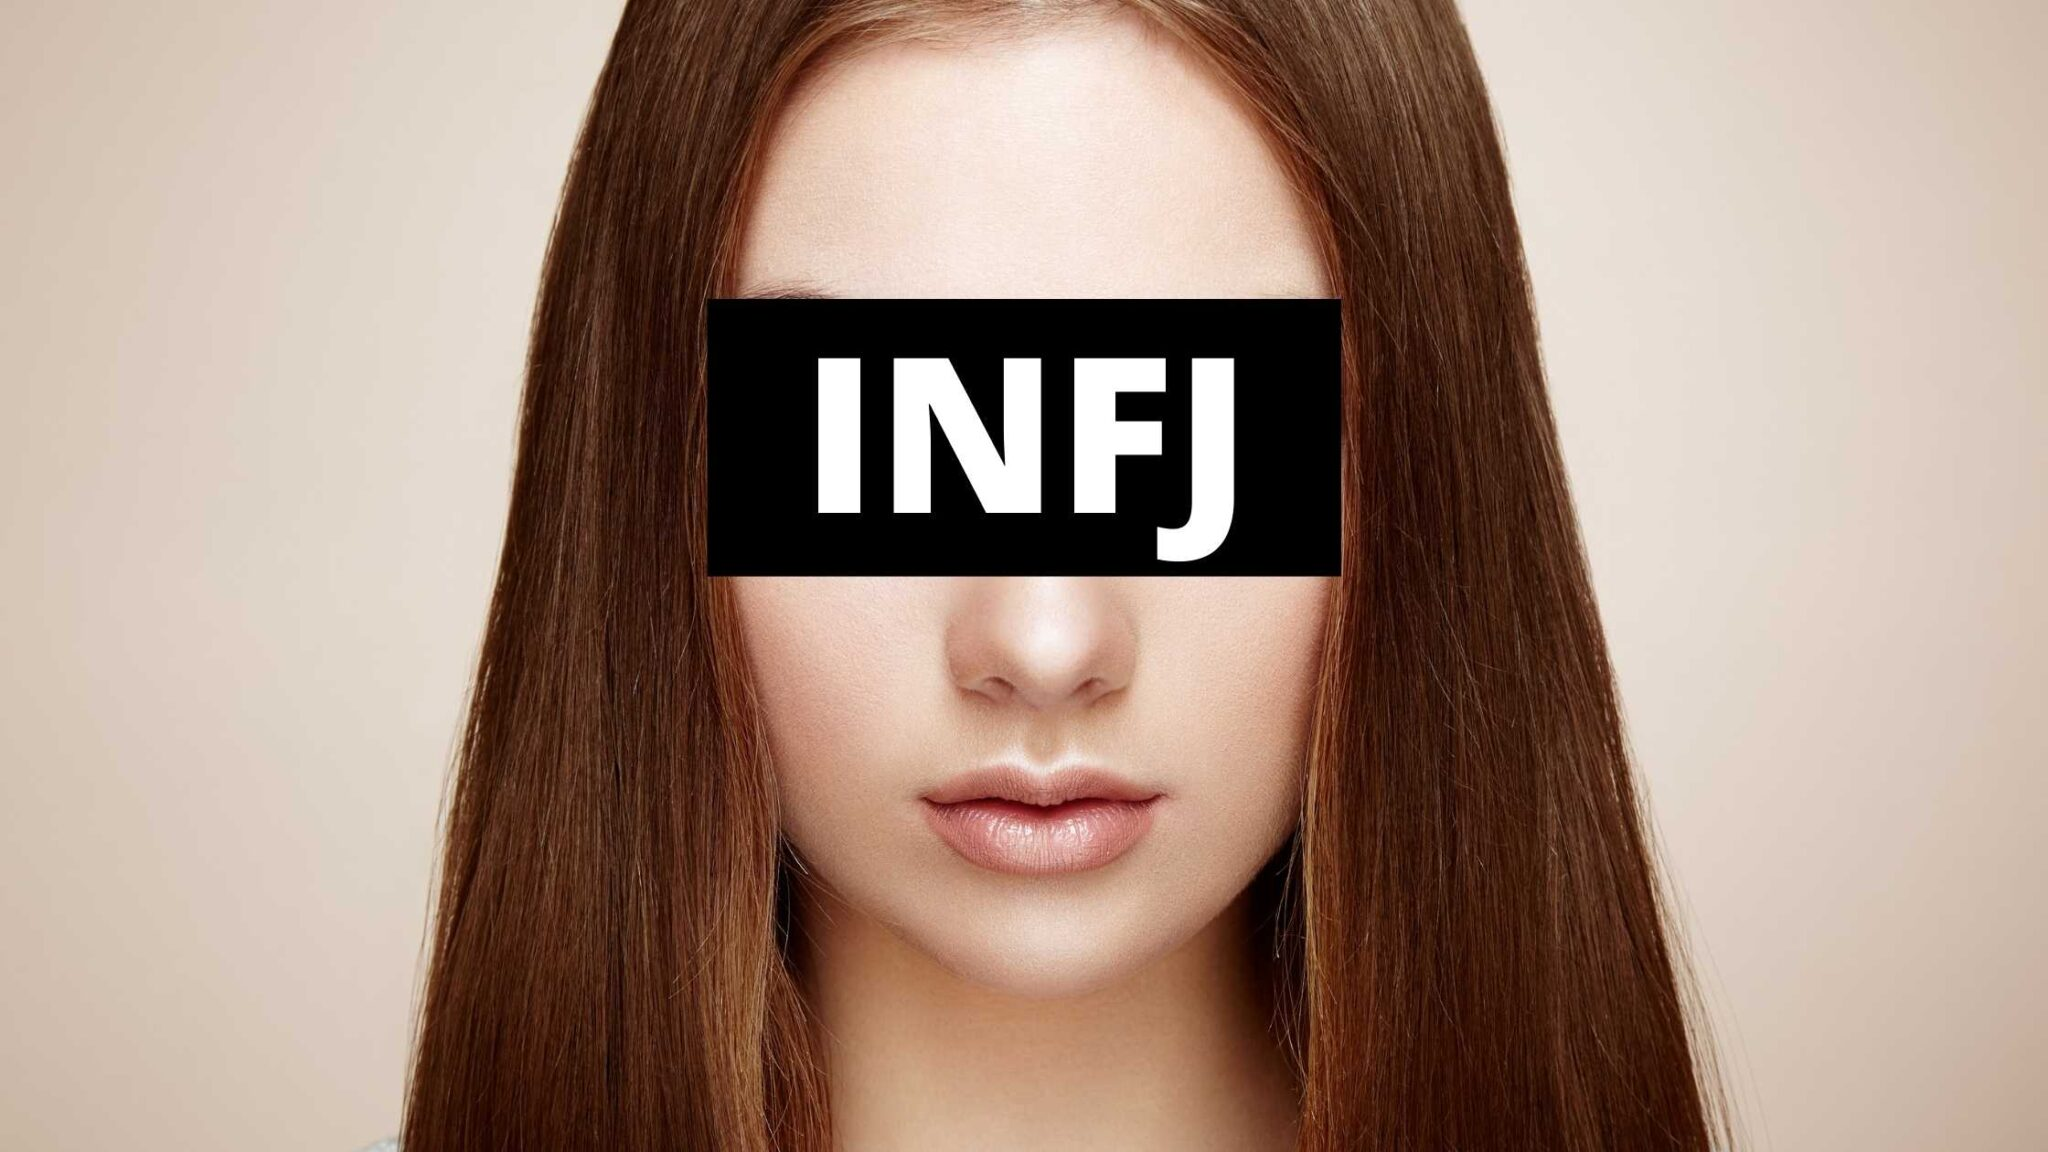 INFJ Defined: What It Means to be the INFJ Personality Type